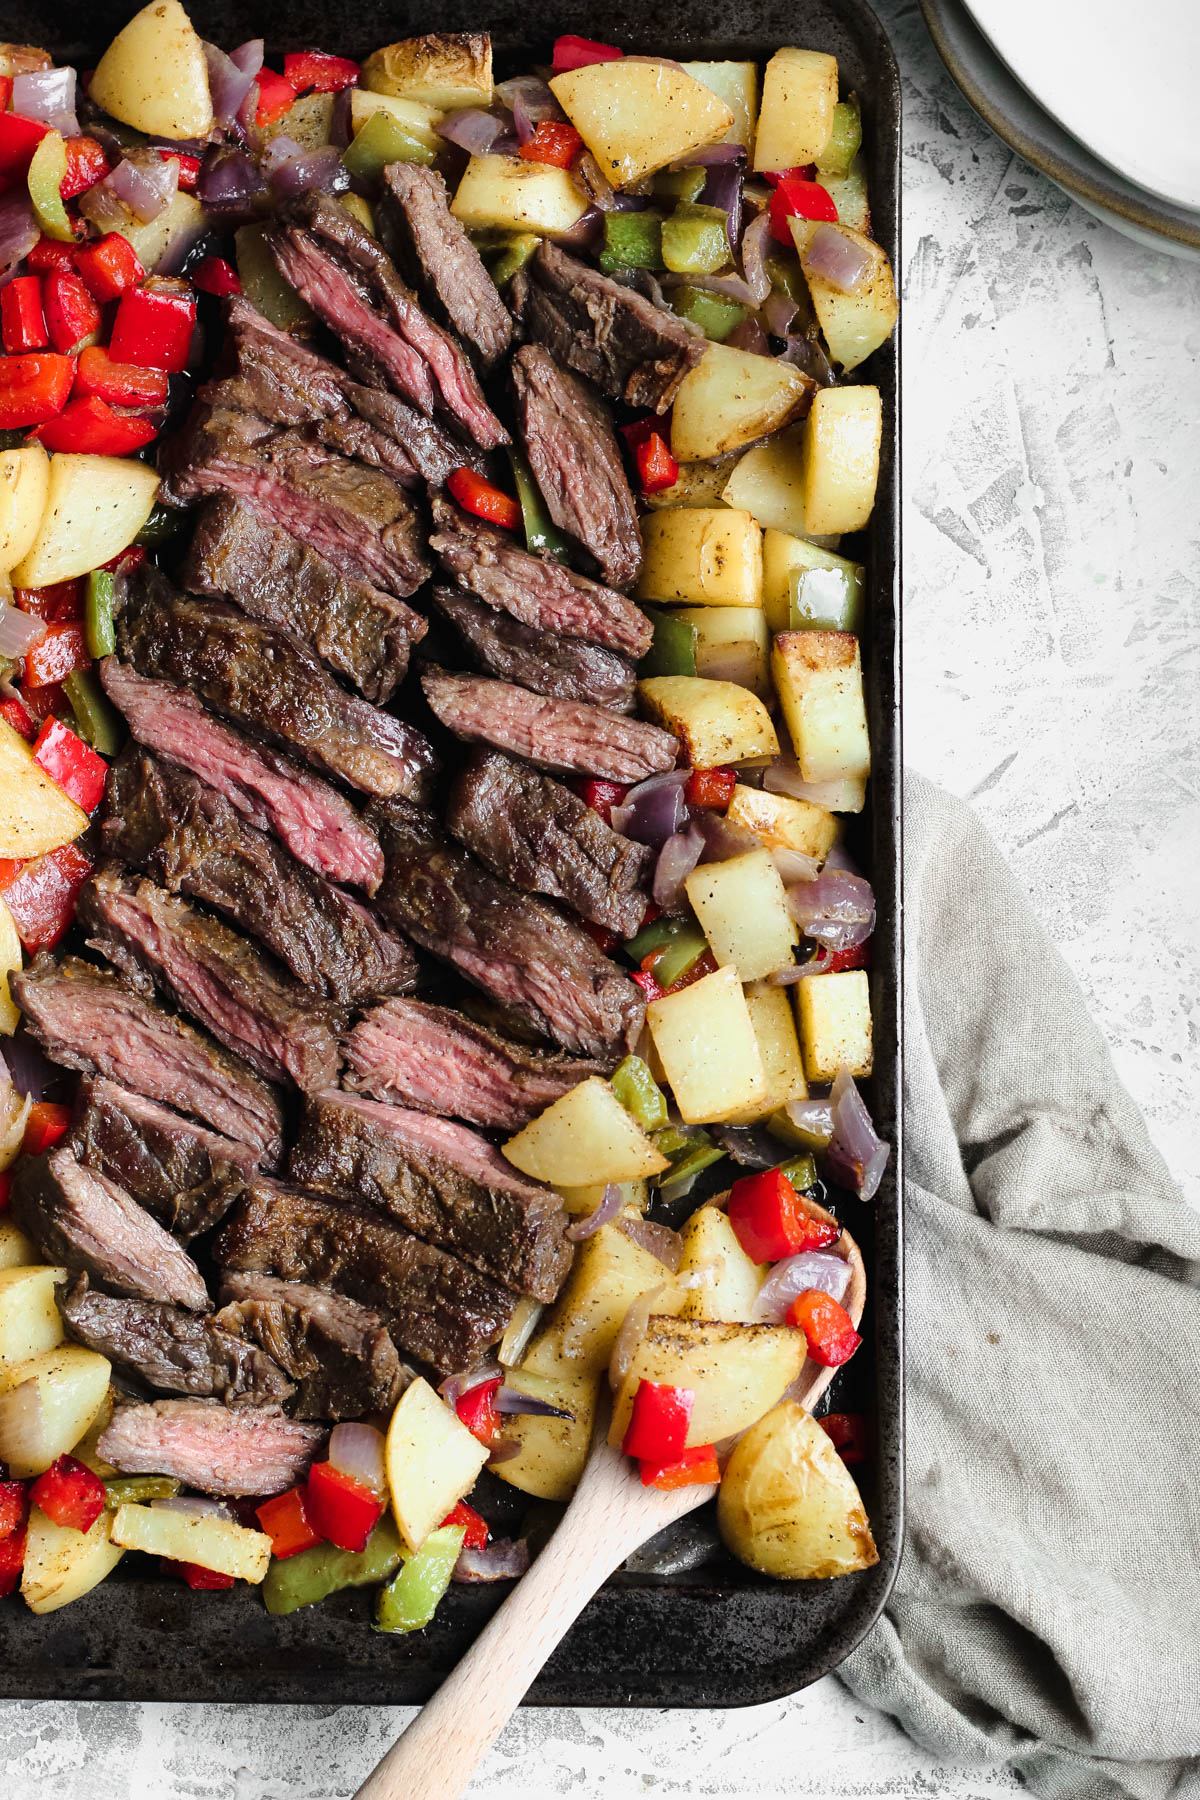 a cooking sheet filled with cooked skirt steak and roasted potatoes and onions